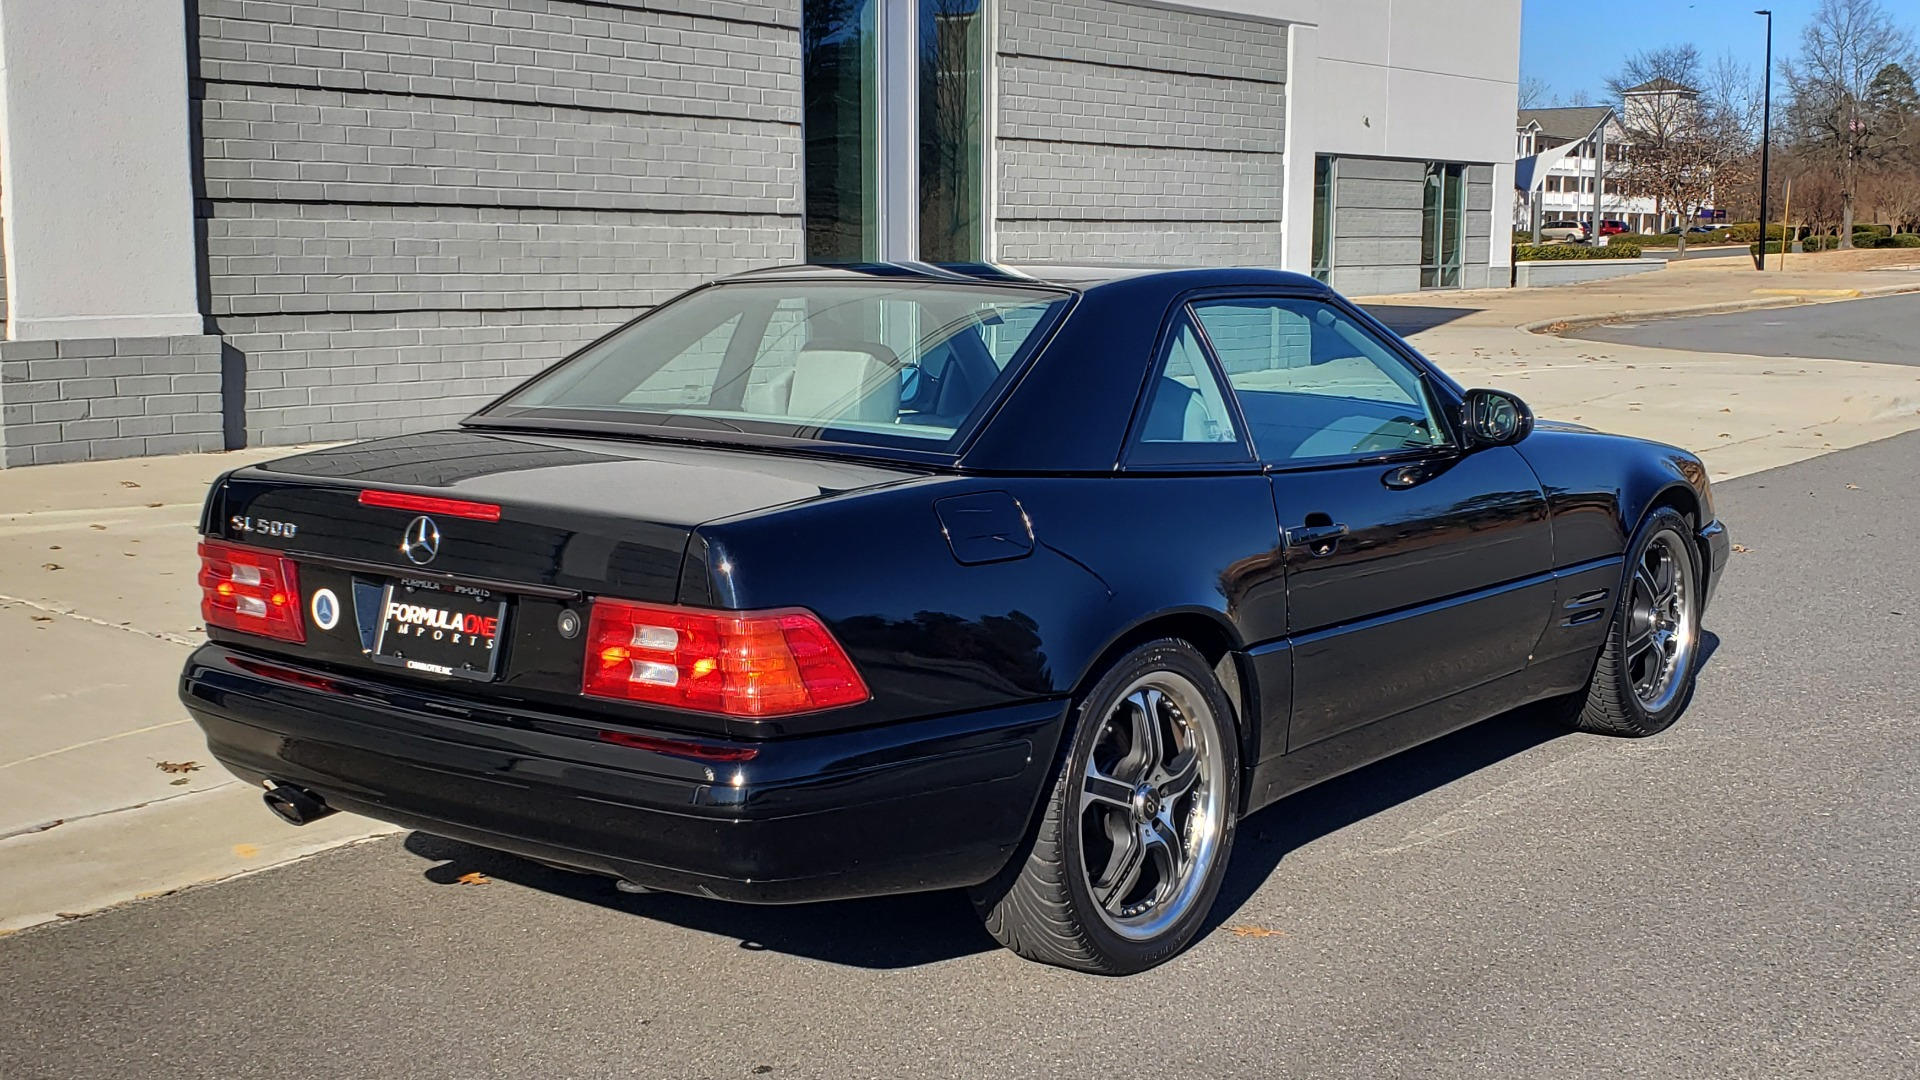 Used 1999 Mercedes-Benz SL-CLASS ROADSTER / 5.0L V8 (302HP) / 5-SPD AUTO / 18IN WHEELS for sale $9,995 at Formula Imports in Charlotte NC 28227 6